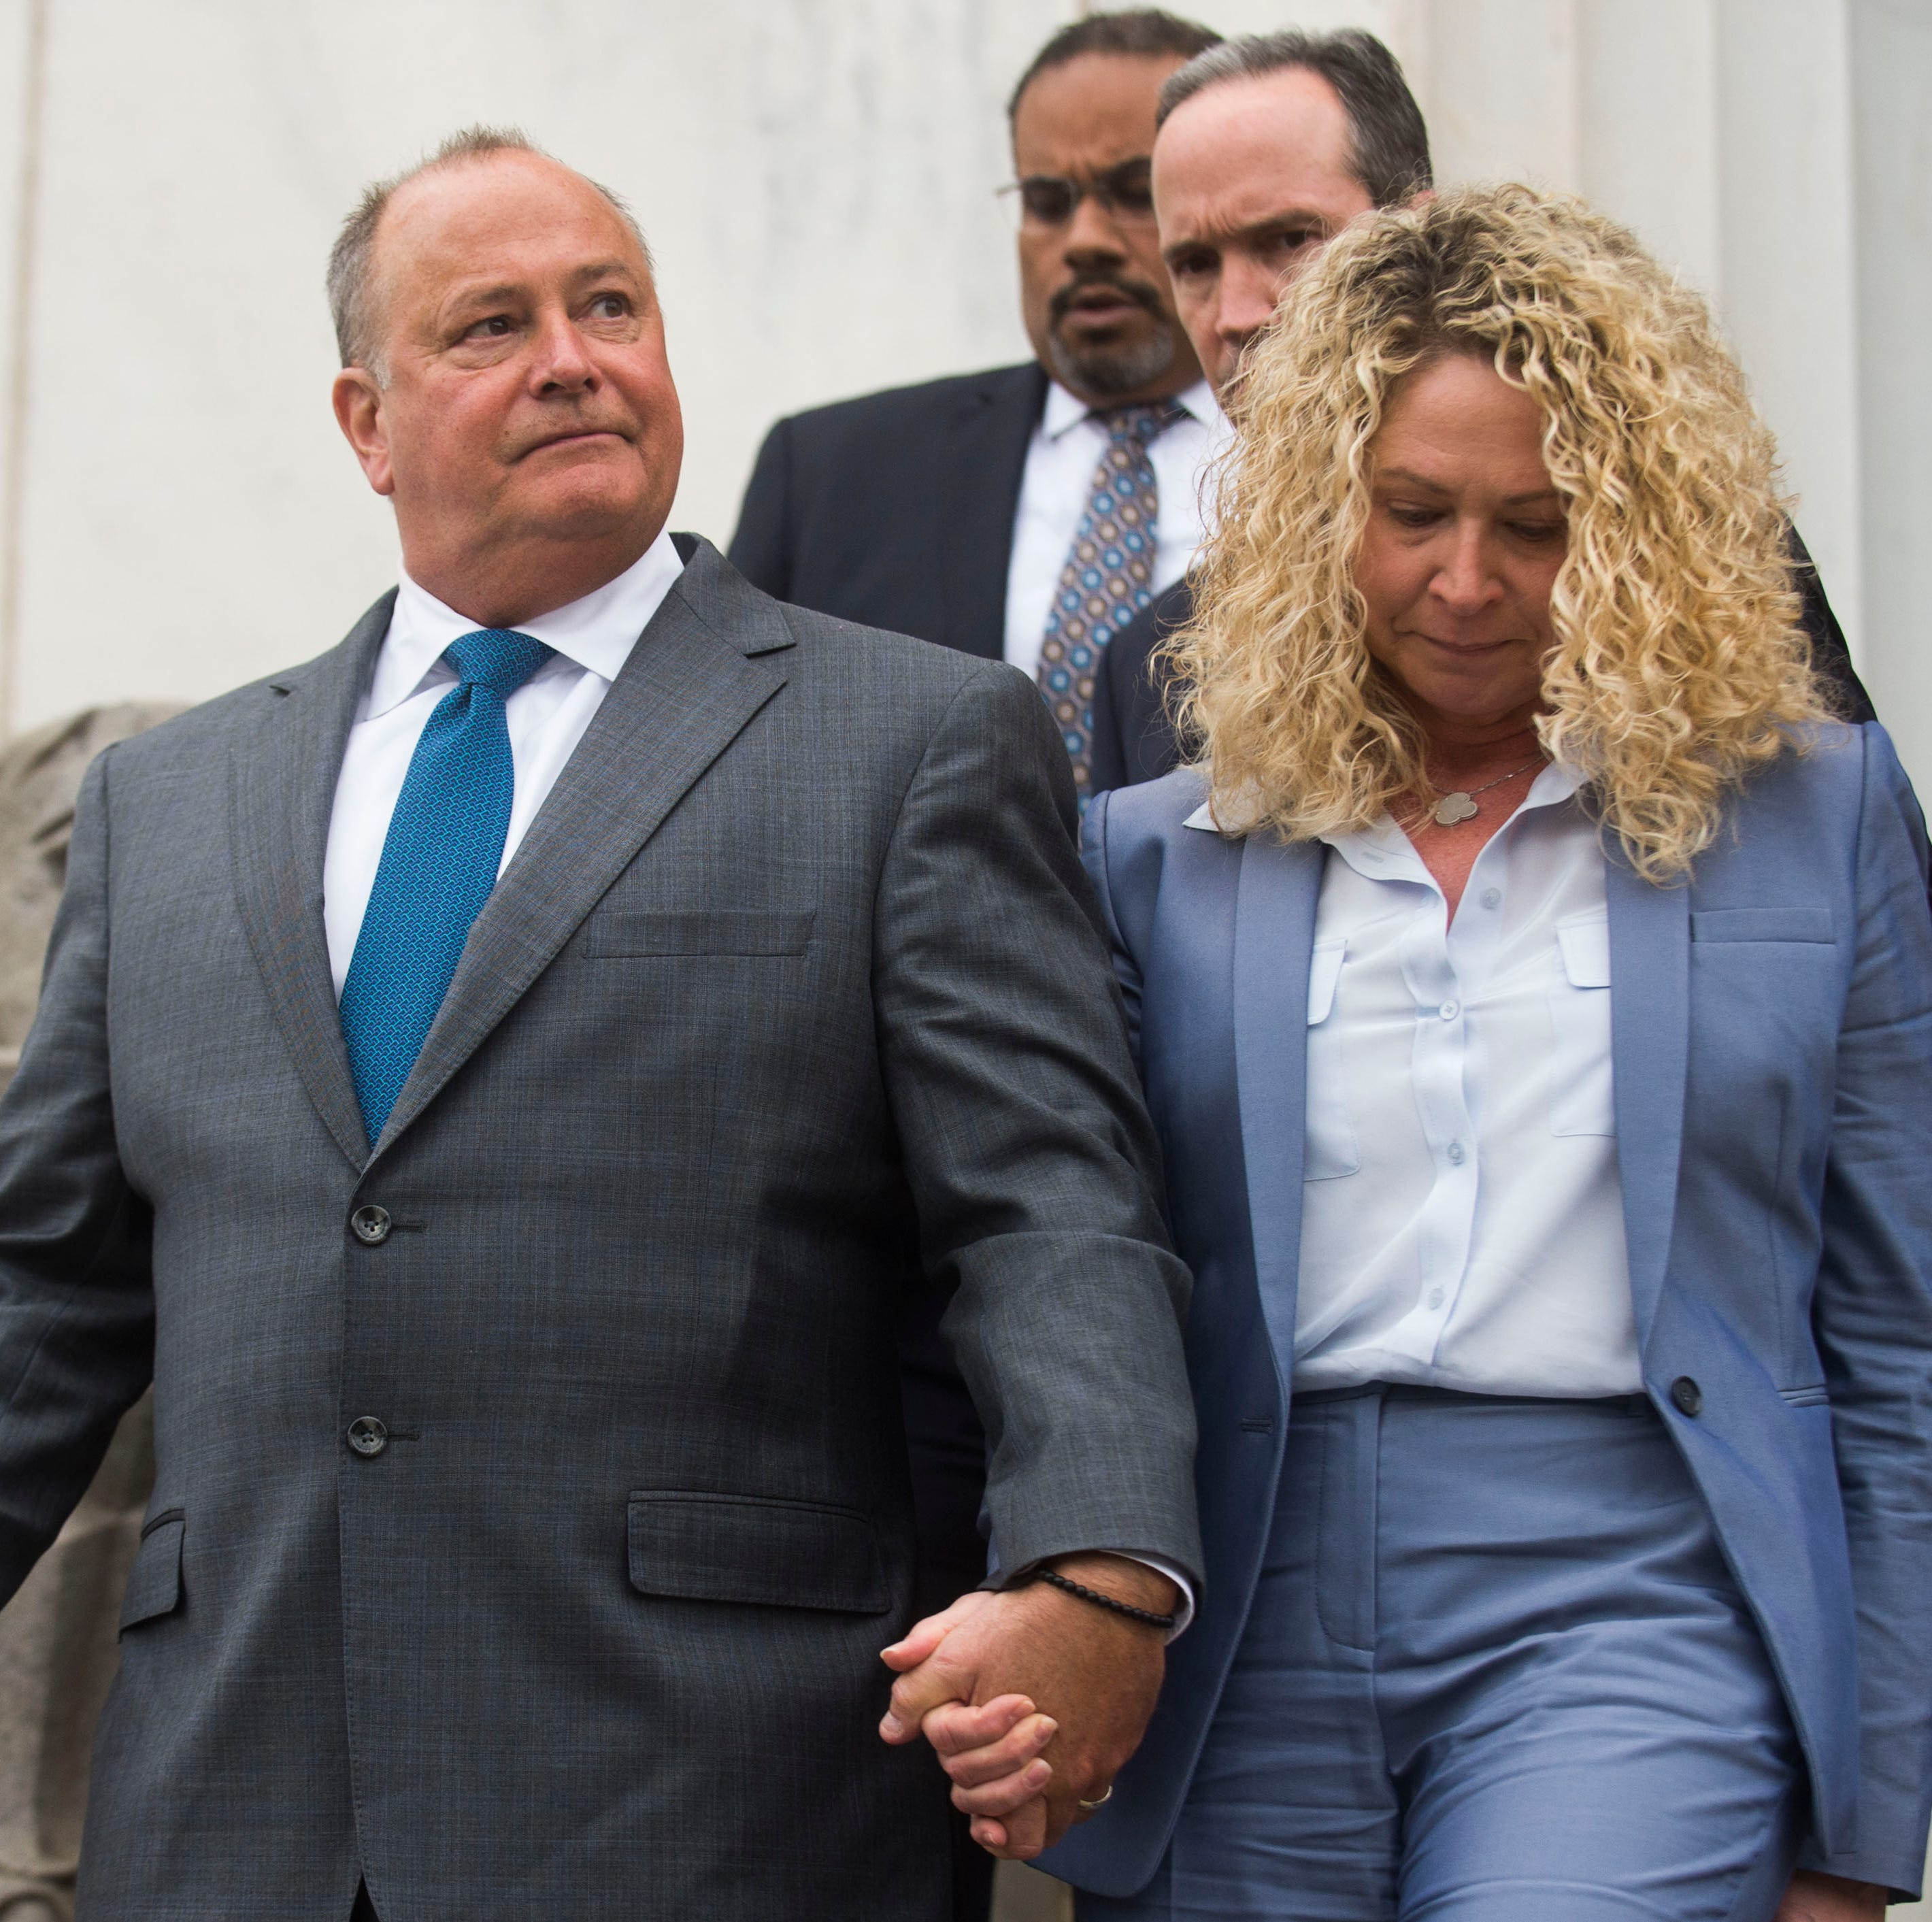 Ex-Pilot Flying J president to stay on house arrest while fighting fraud conviction